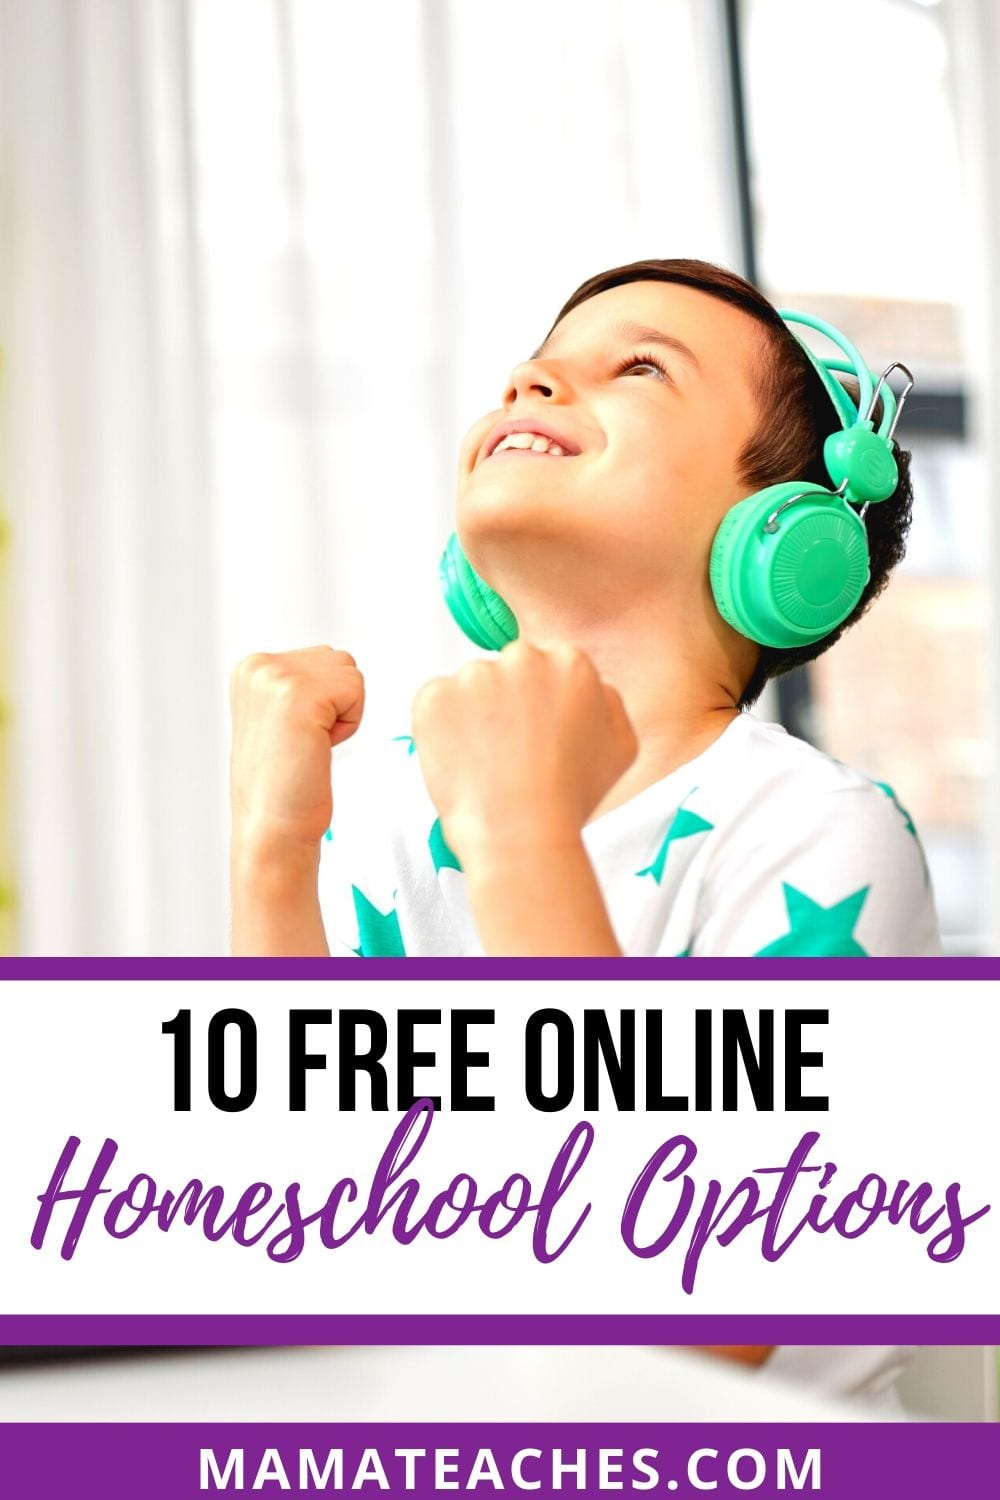 10 Free Online Homeschool Options - Get excited as this little boy who is doing work from home online with these 10 free online homeschooling sites.